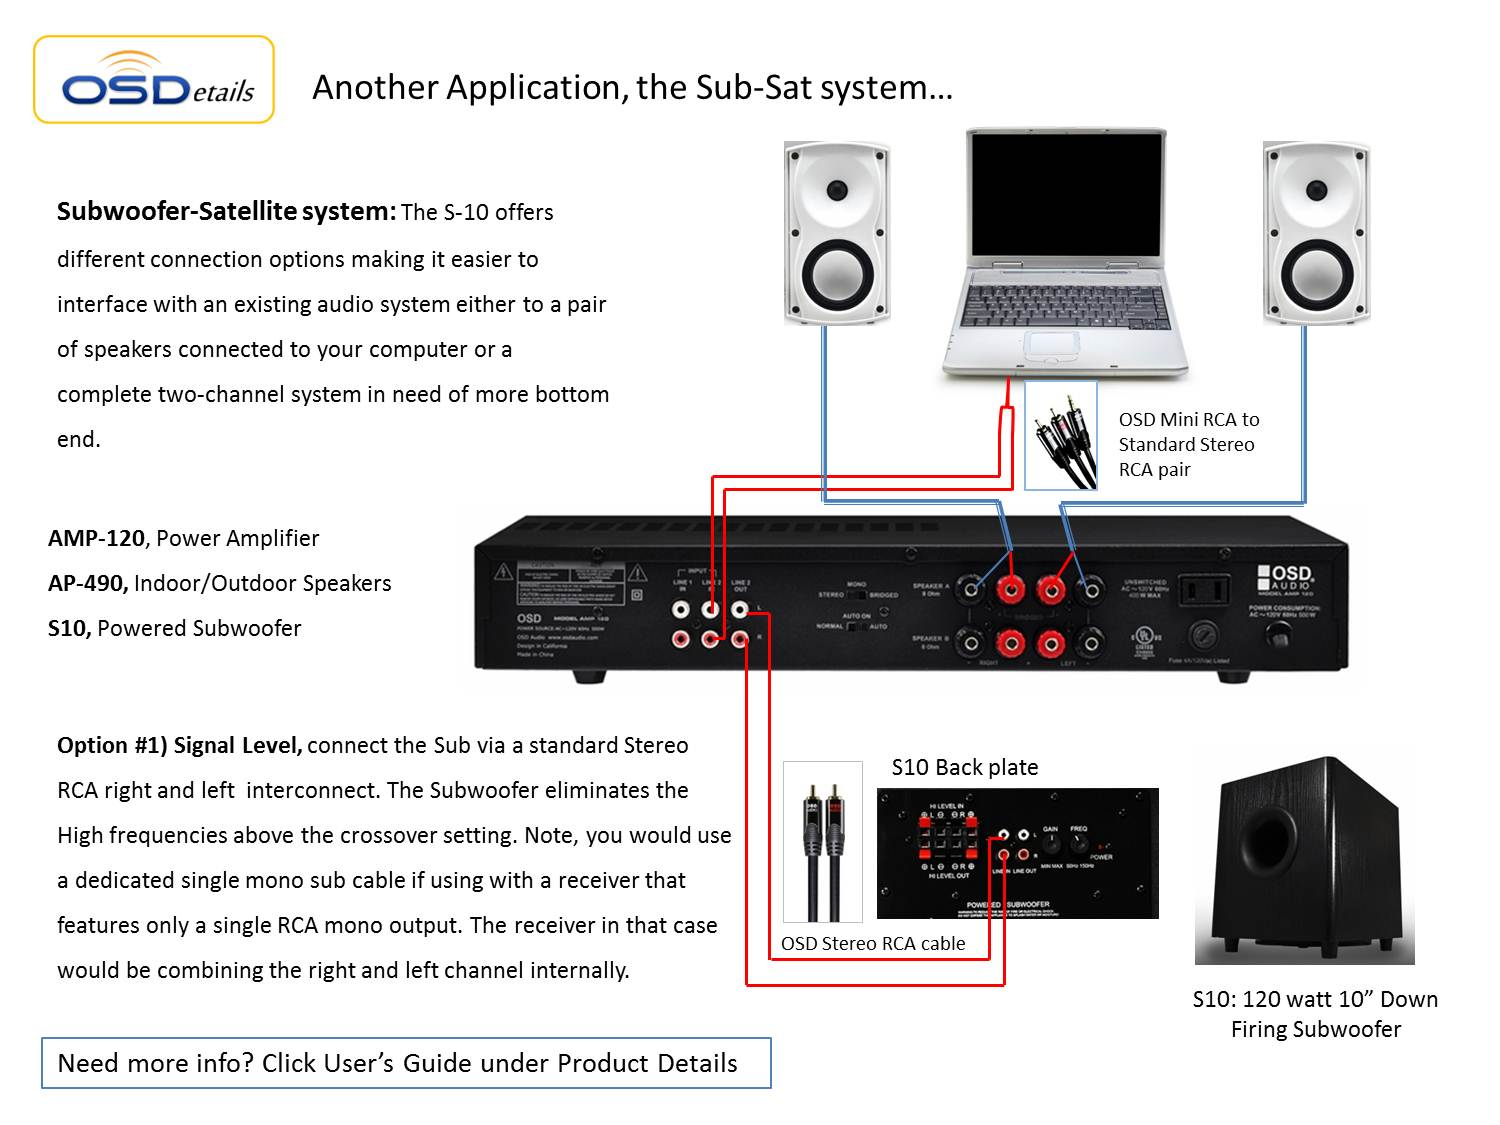 home theater subwoofer osd s 12 high powered 43?resize\=665%2C499 home amp wiring diagrams car audio amplifier wiring diagrams 2010 chrysler 300 radio wiring diagram at soozxer.org